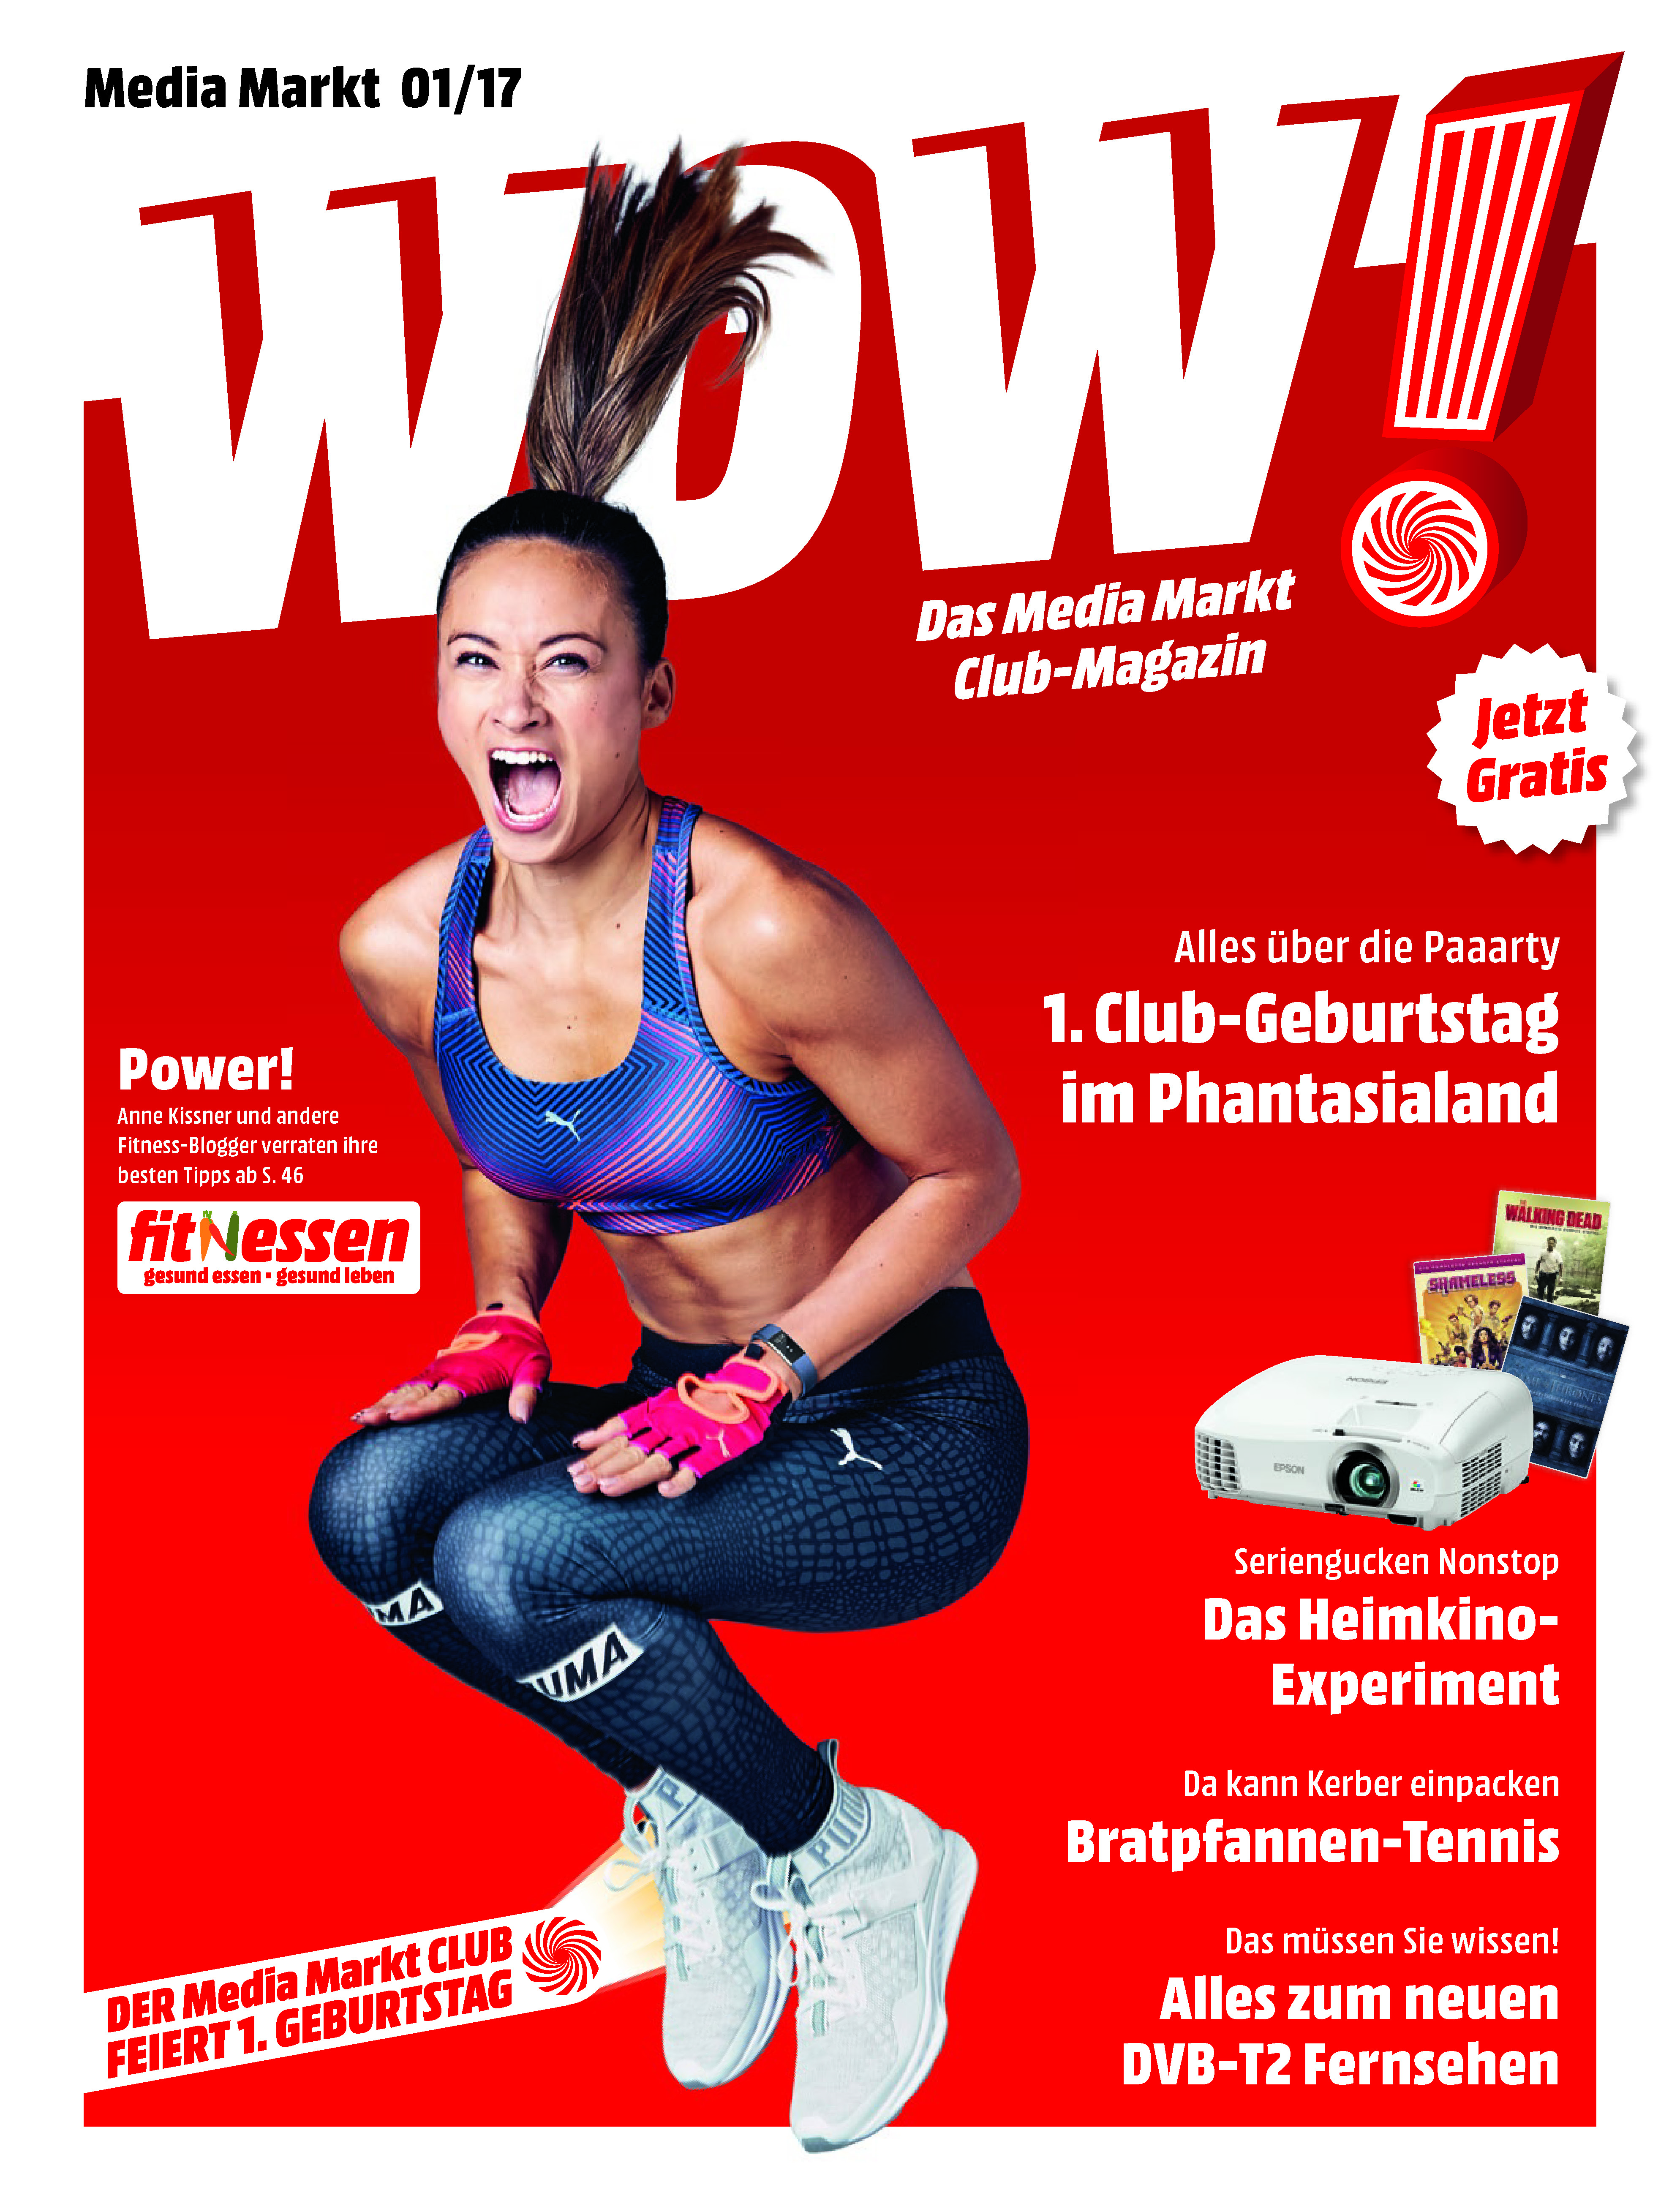 Mediamarkt Club Magazin Wow 12017 Mit Social Media Fitness Stars